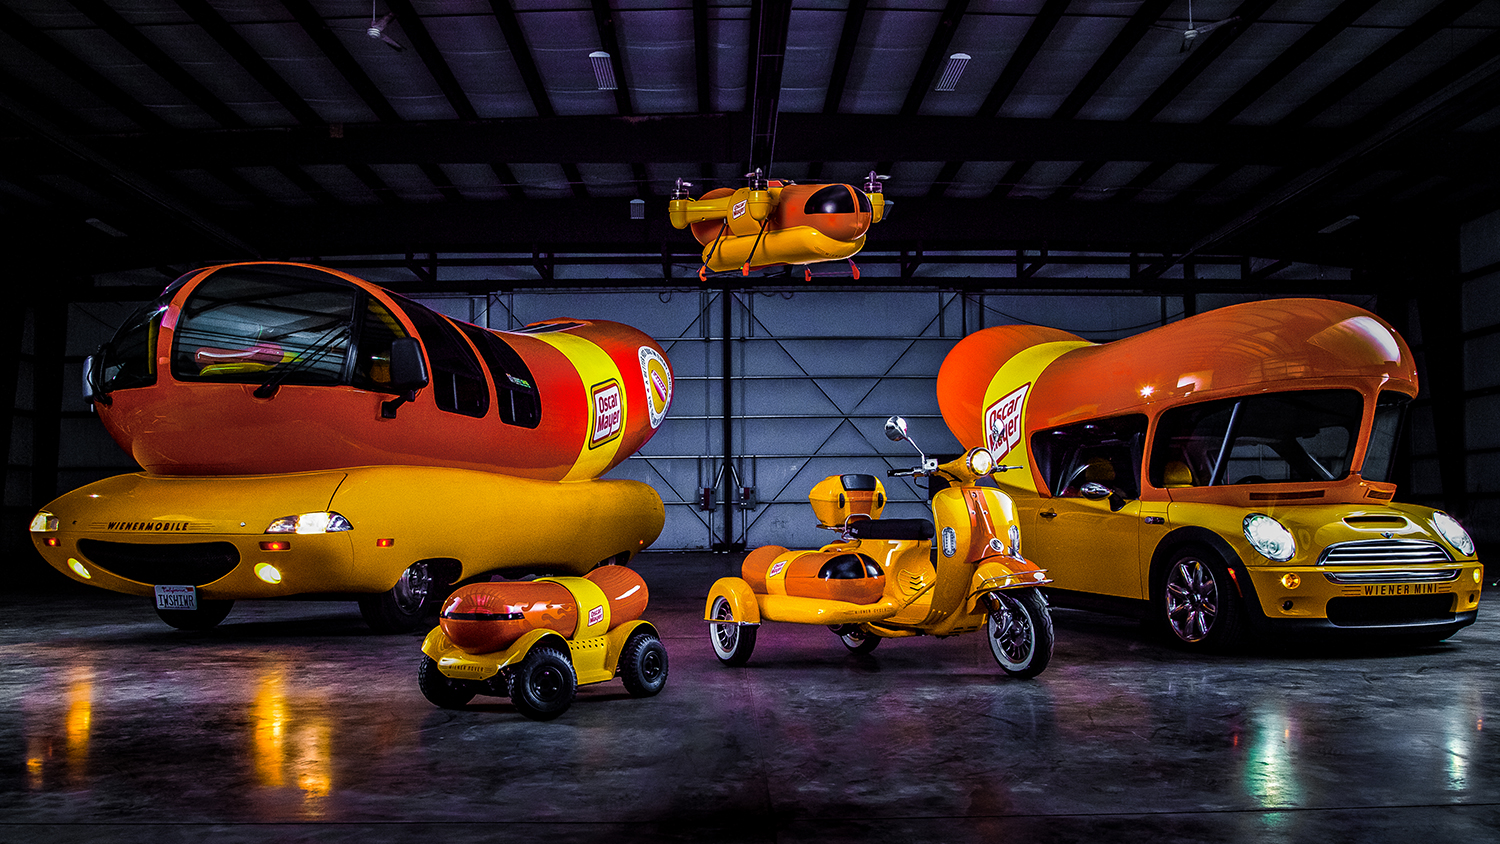 weinermobile drones and cycles